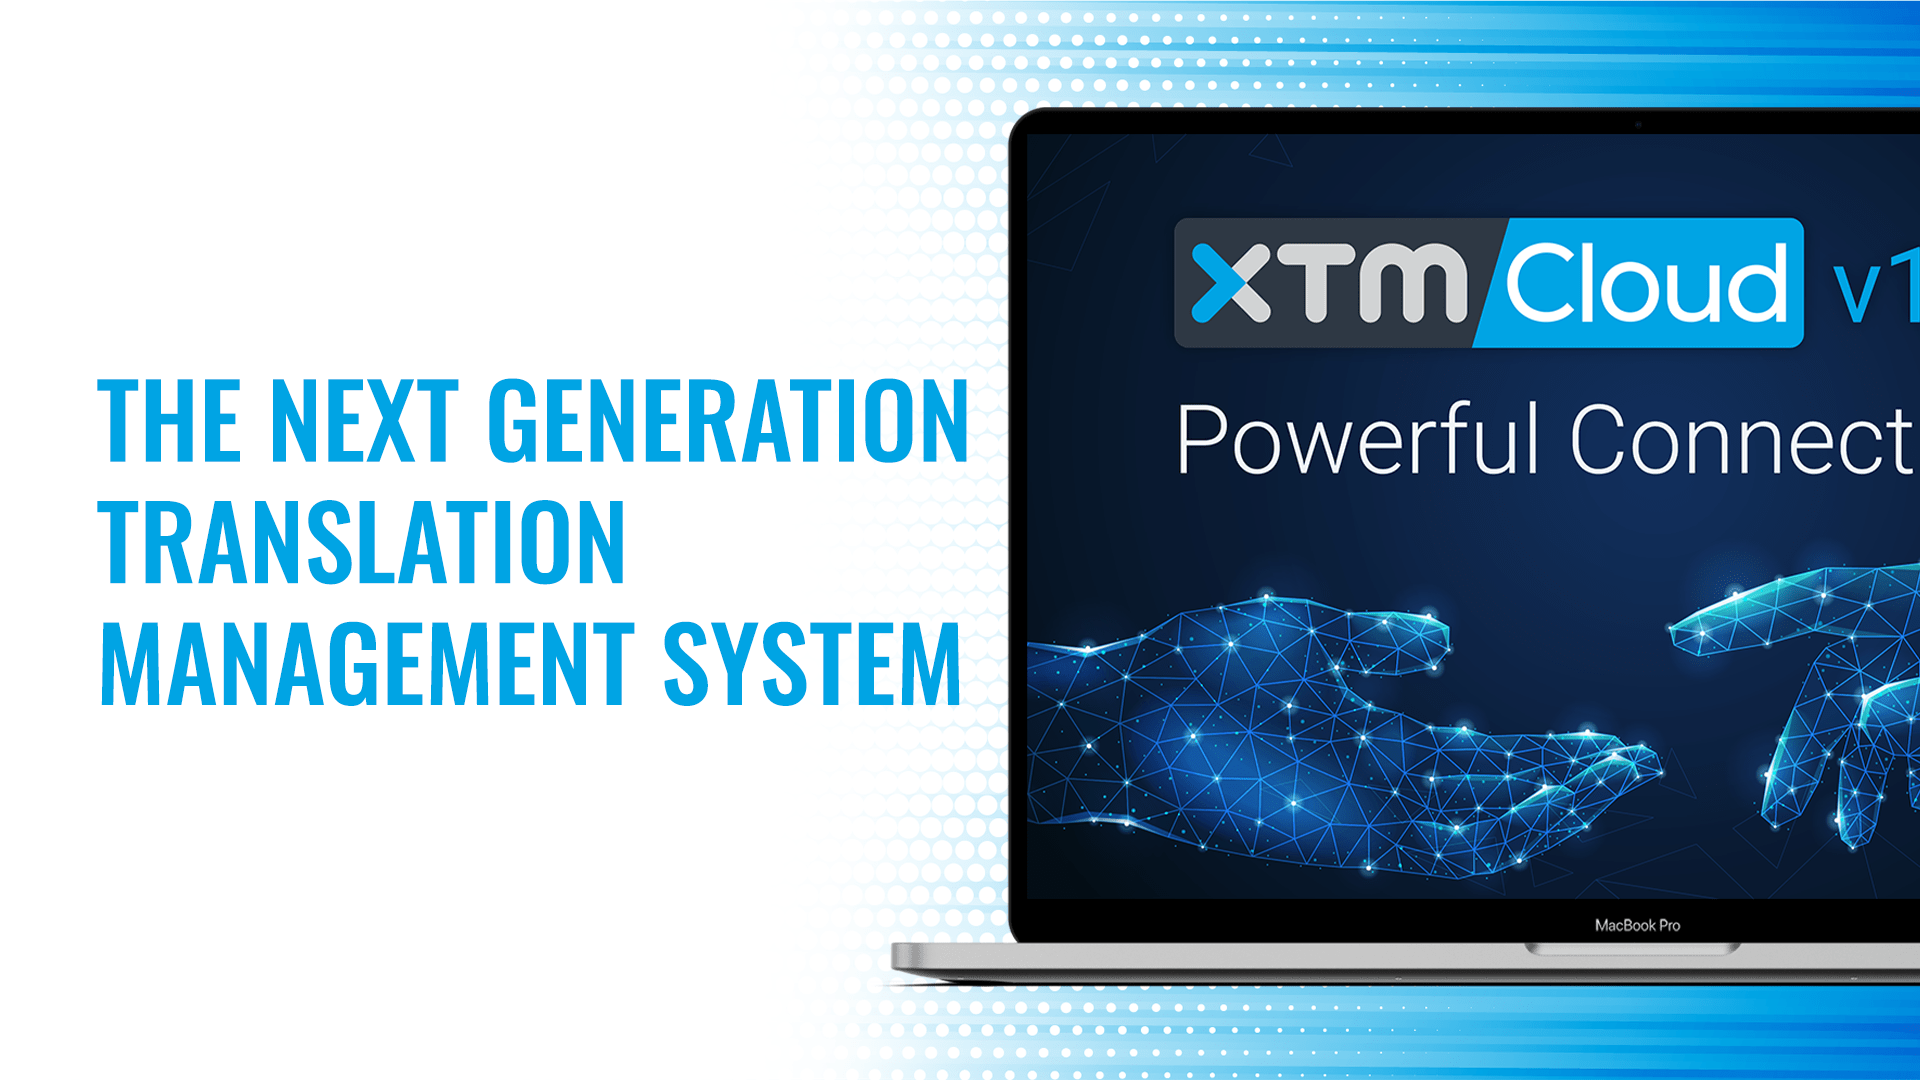 The next generation translation management system